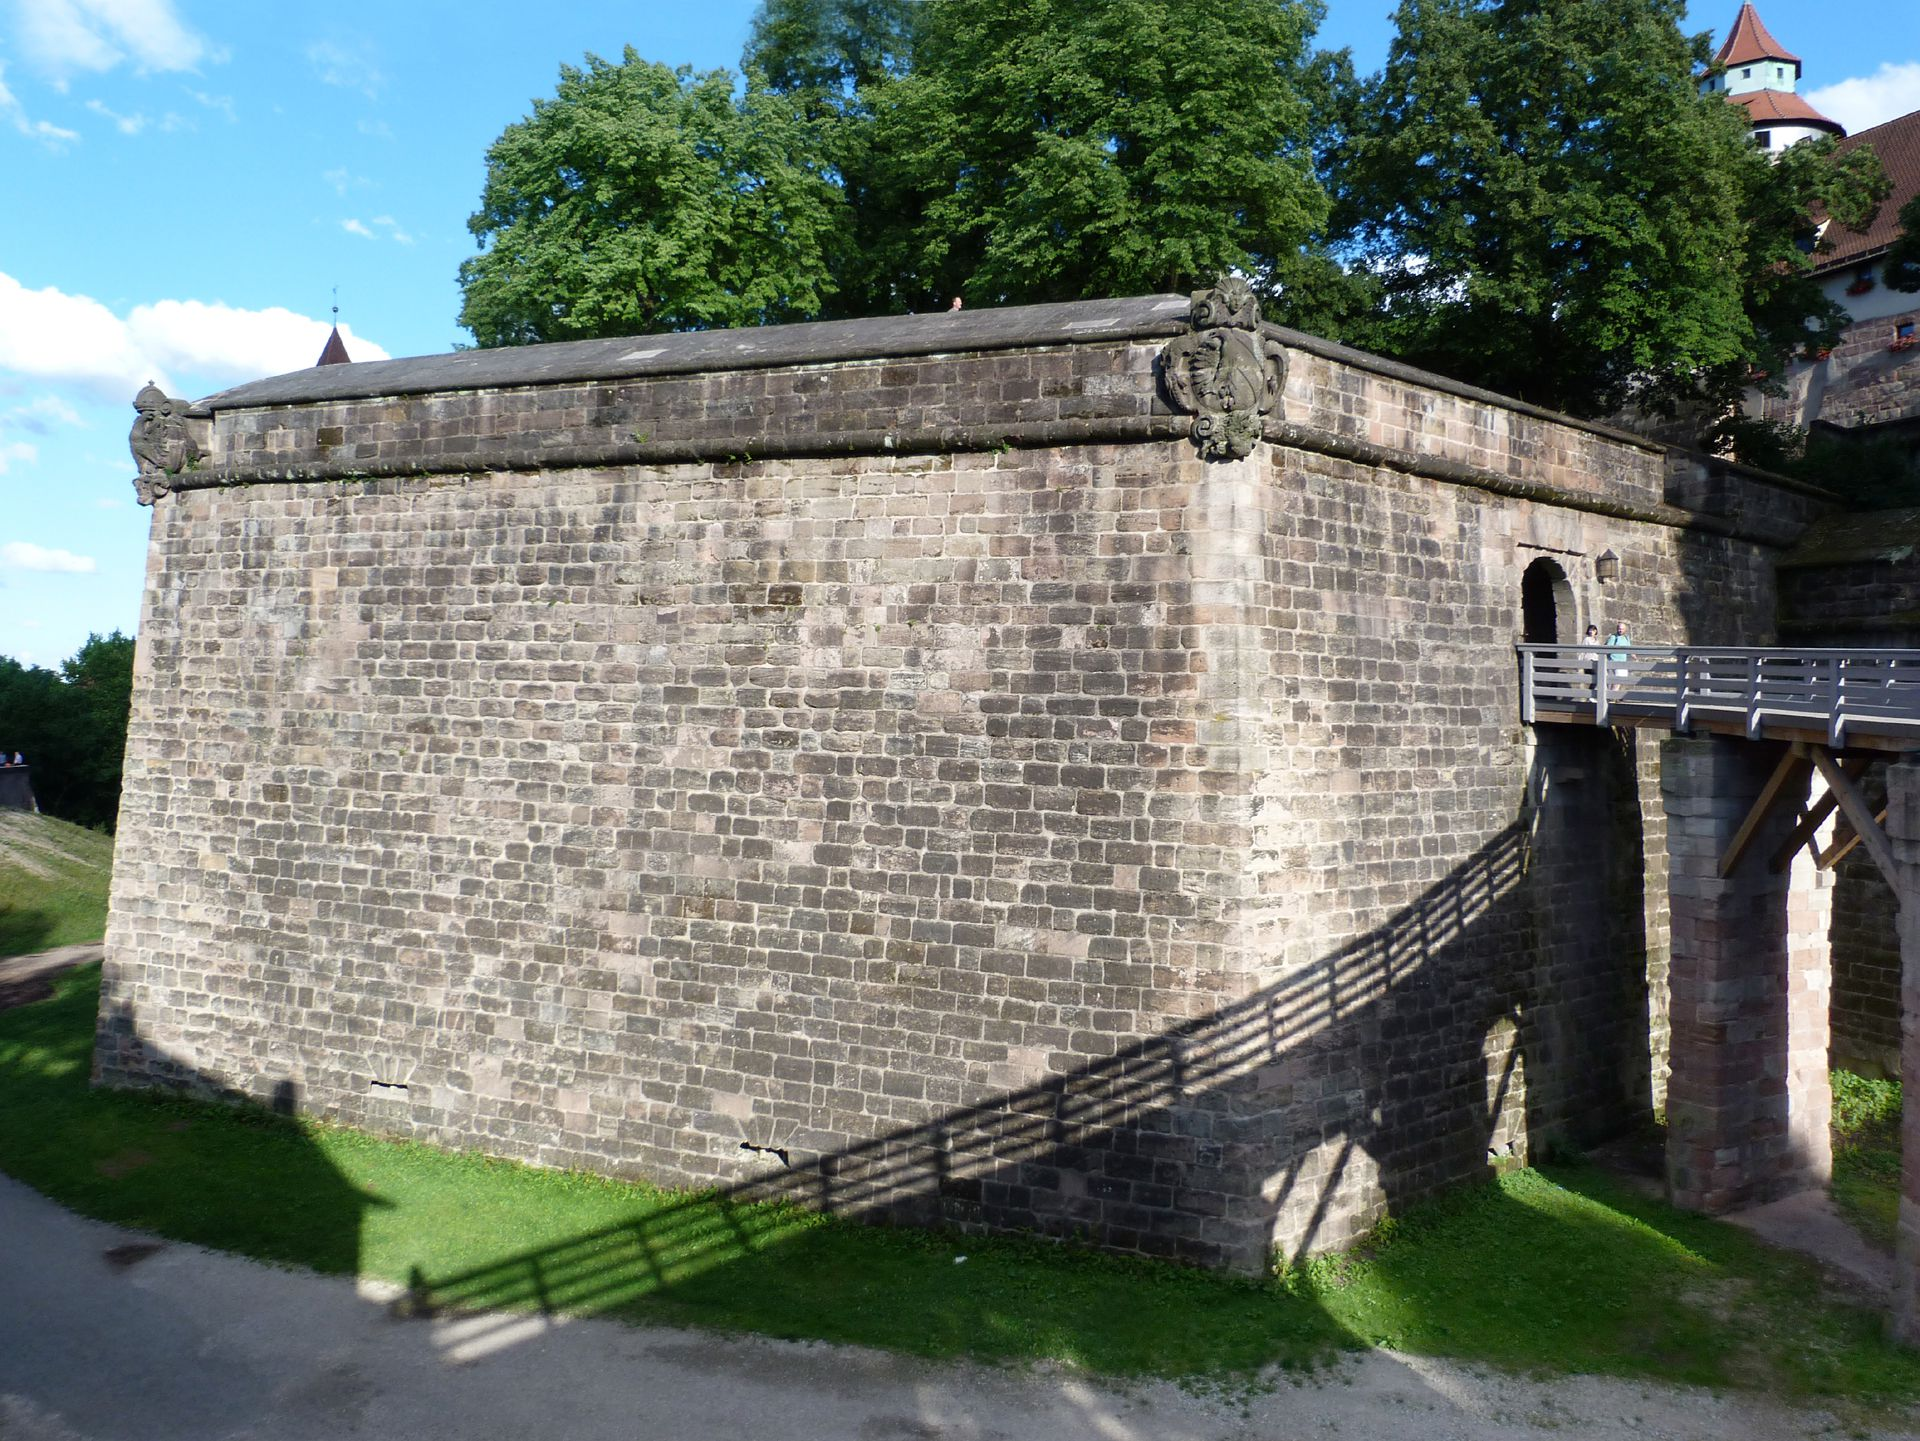 City Fortification Moat with Tiergärtnertor bastion and bridge